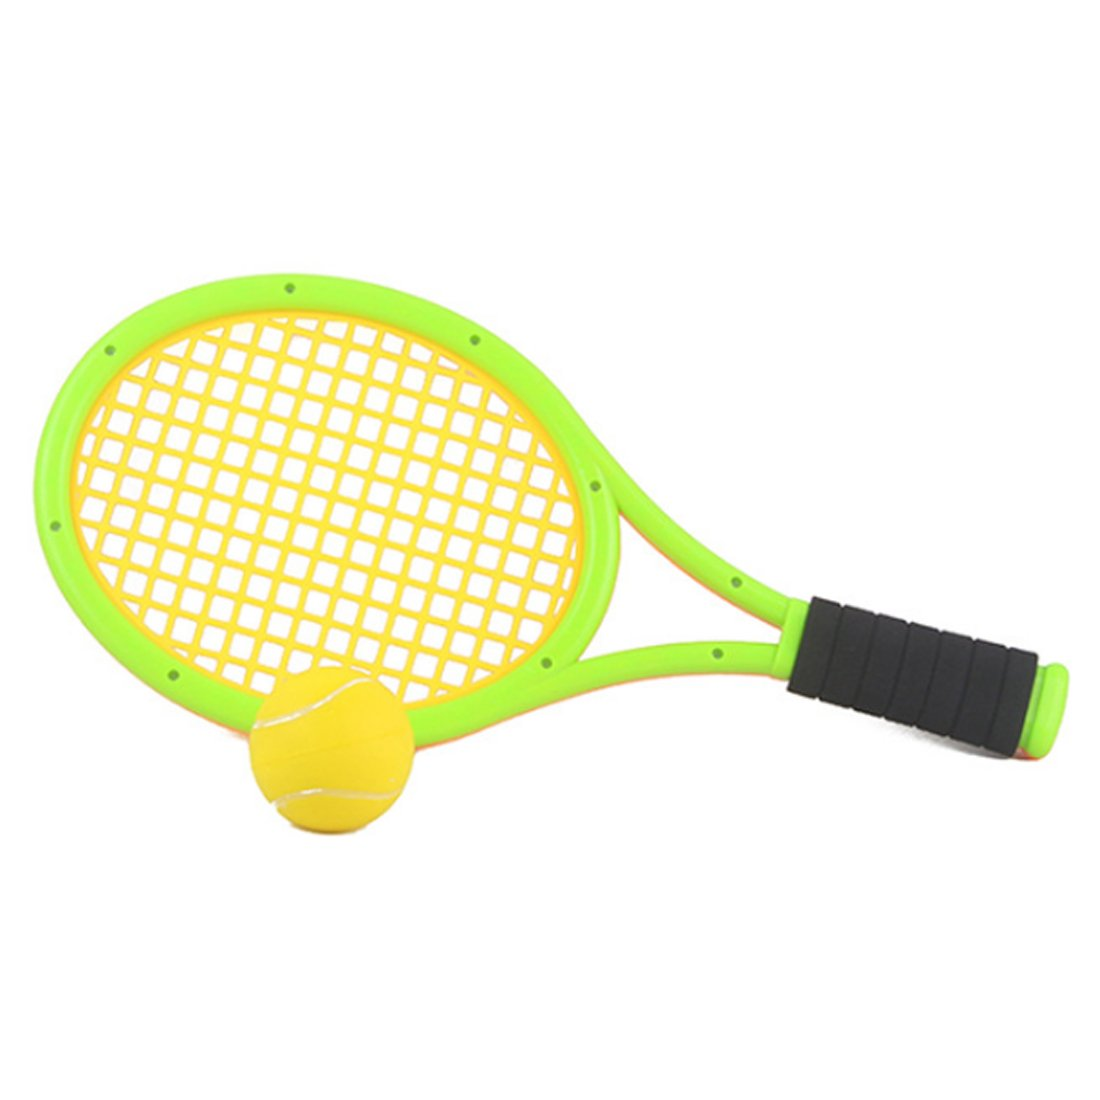 Amazon.com: FenglinTech One Set of Elastic Tennis Racket Childrens Outdoor Sports Toys - Green: Toys & Games